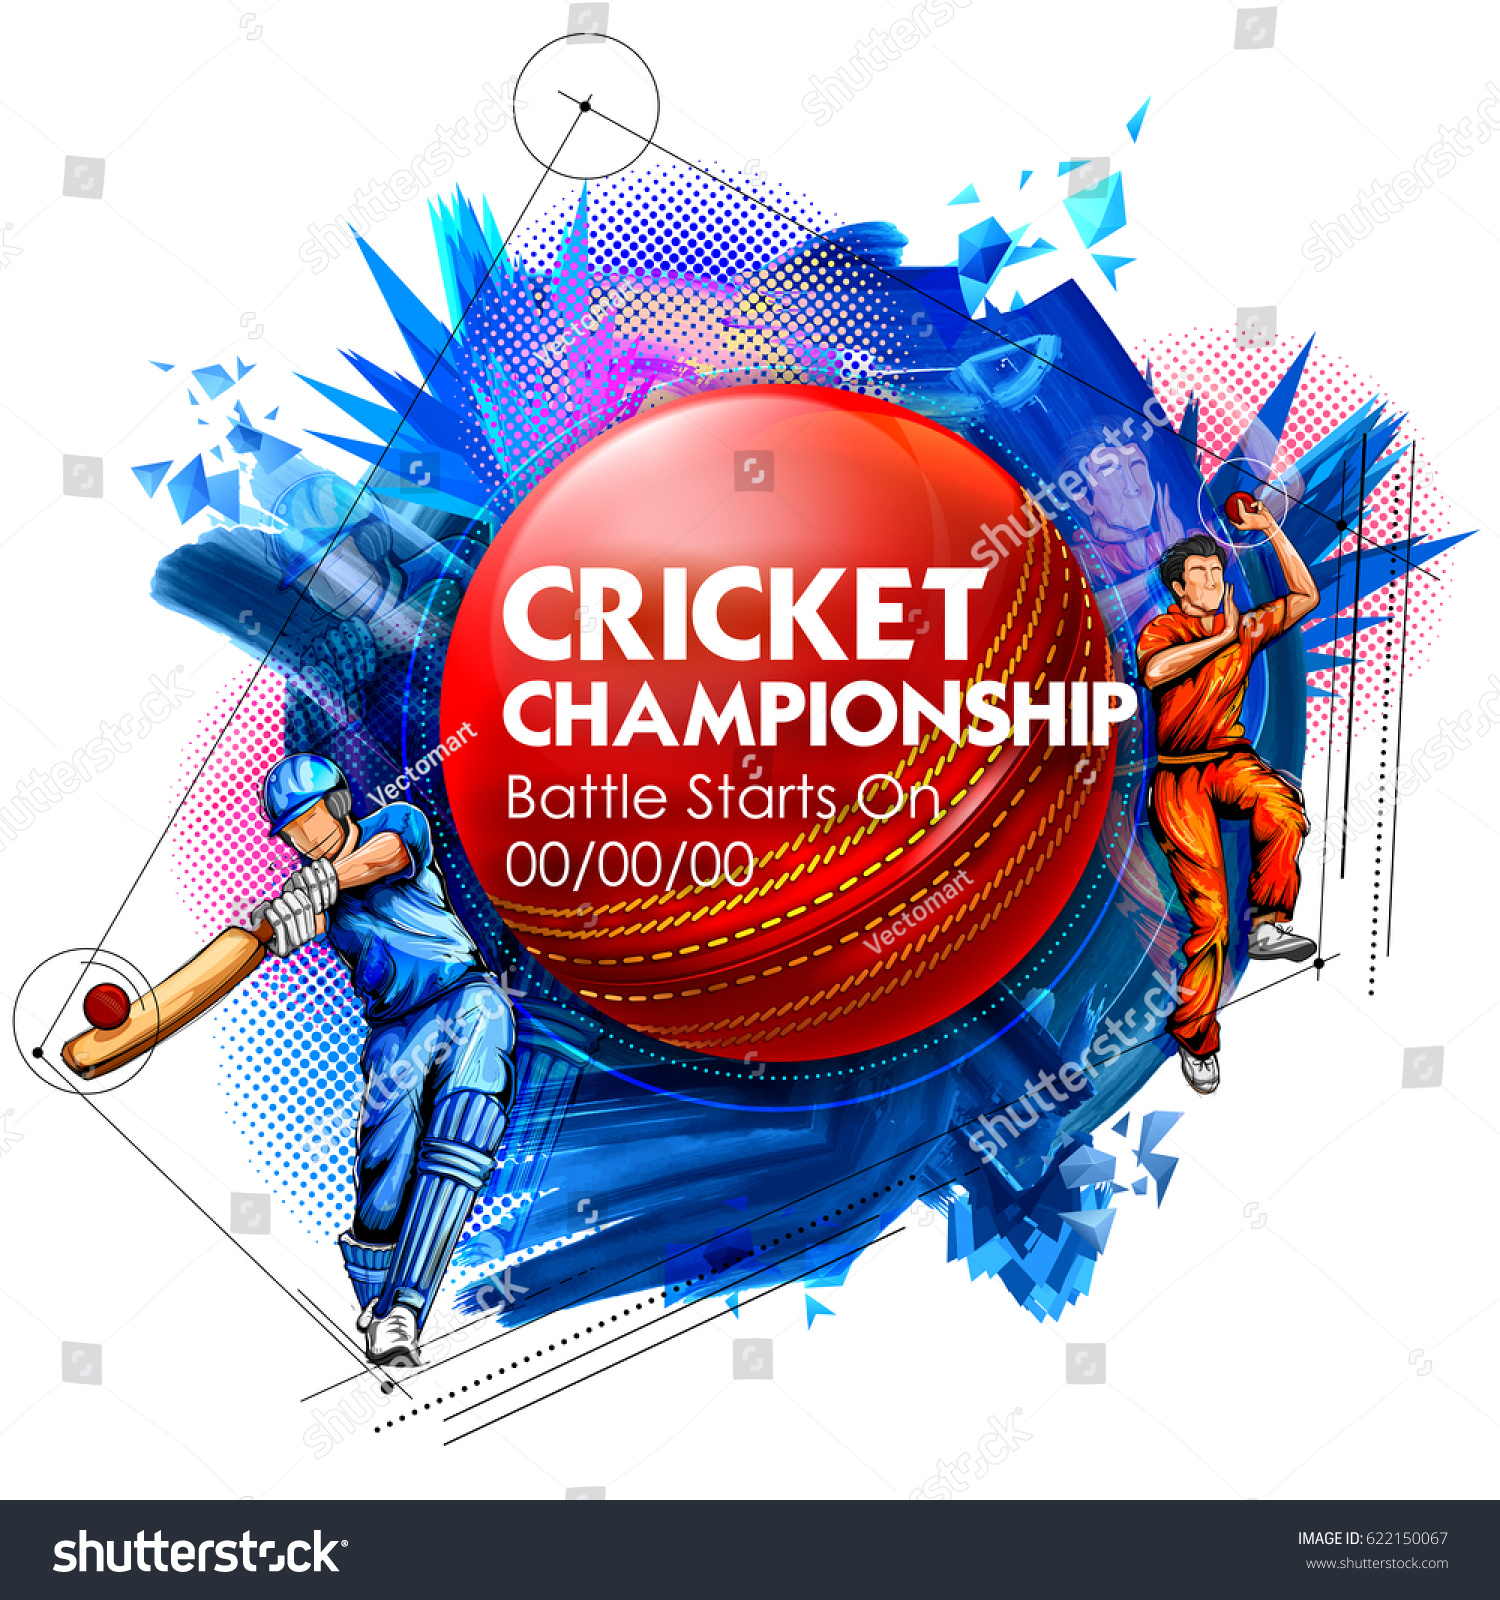 cricket terminology and bowler Terminology a player who delivers the ball to start the game is said to be a  bowler, who bowls, in the case of cricket and pitcher,.